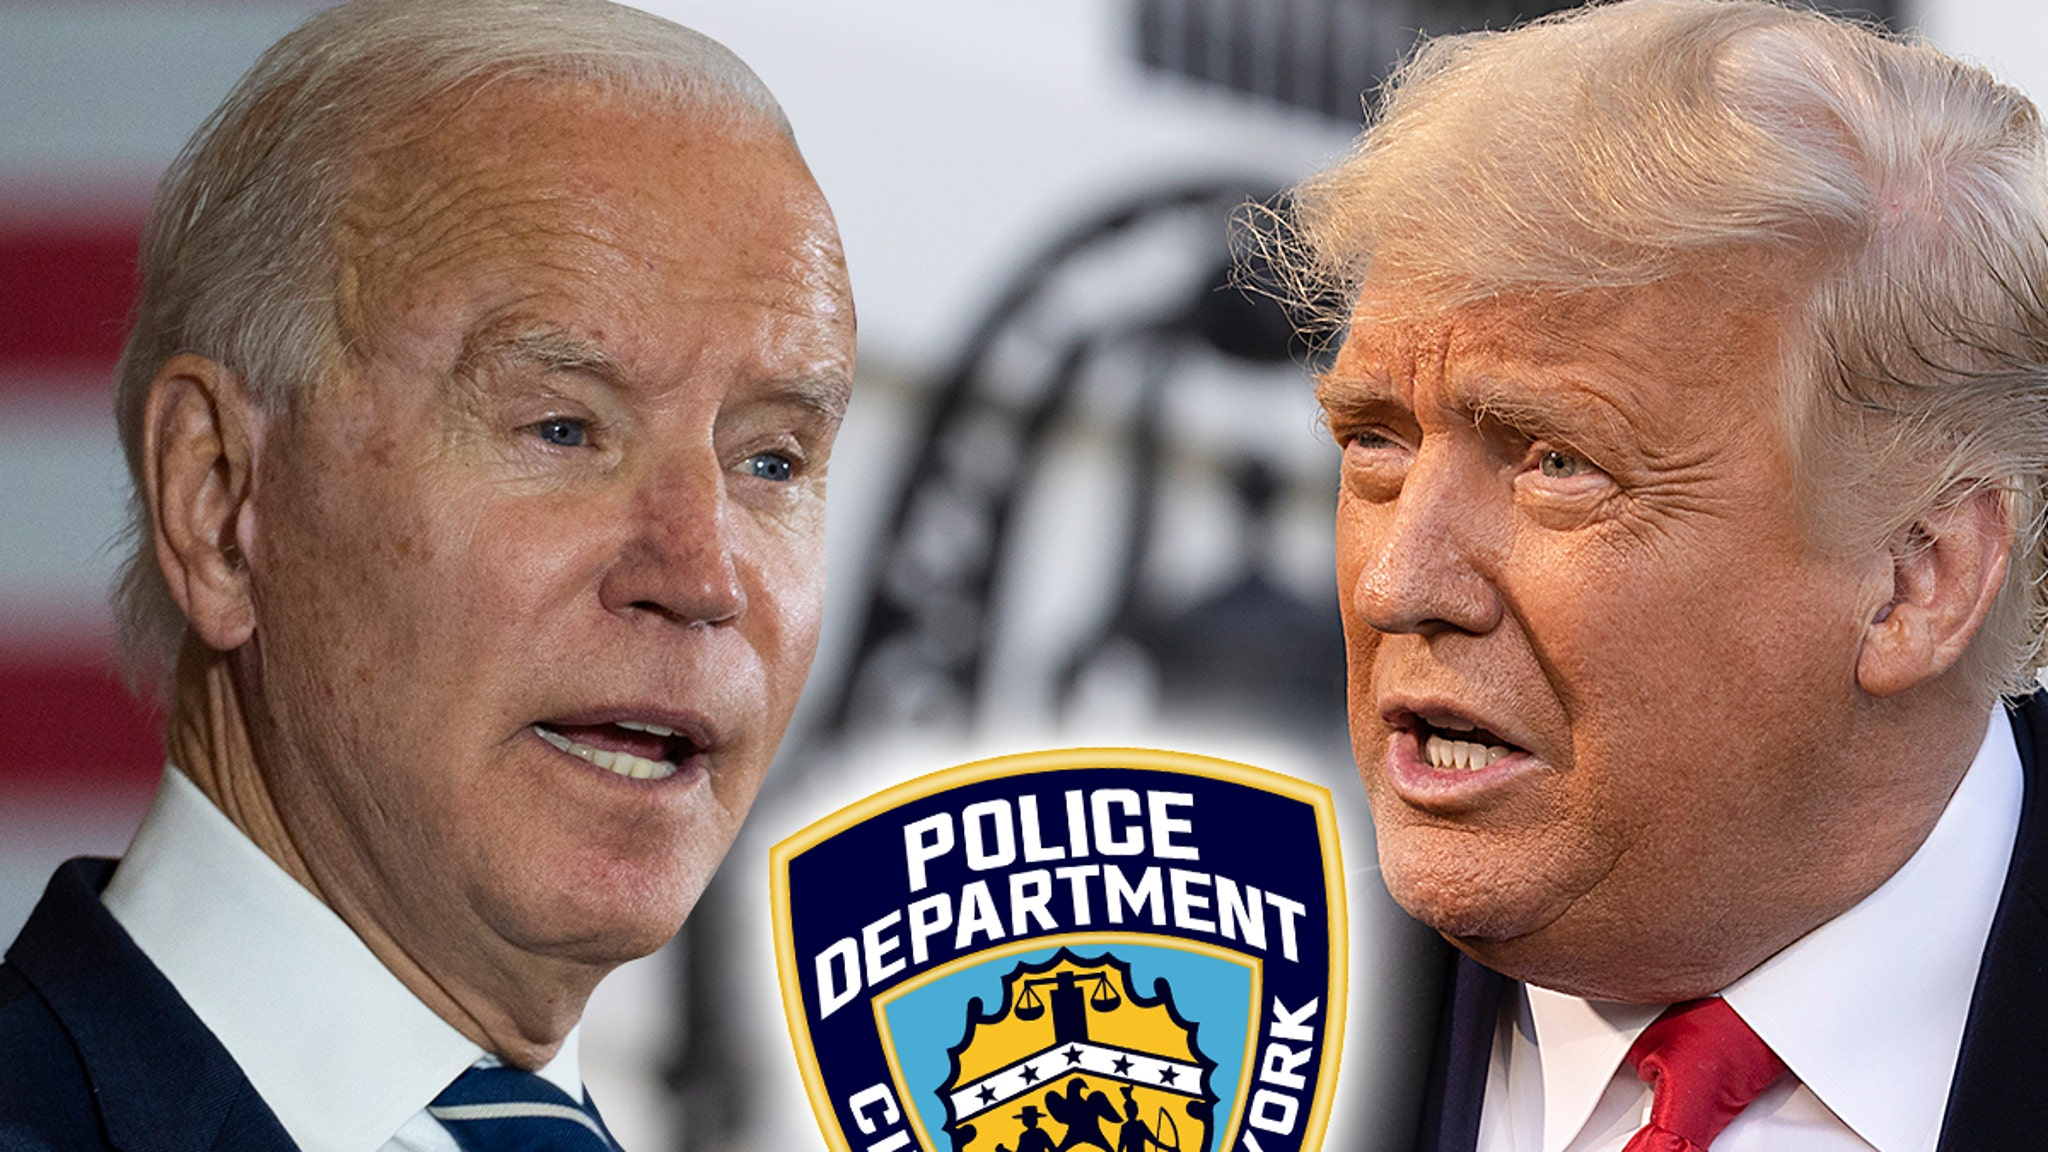 www.tmz.com: NYPD, LAPD Worried About Election Day Protests Turning Violent